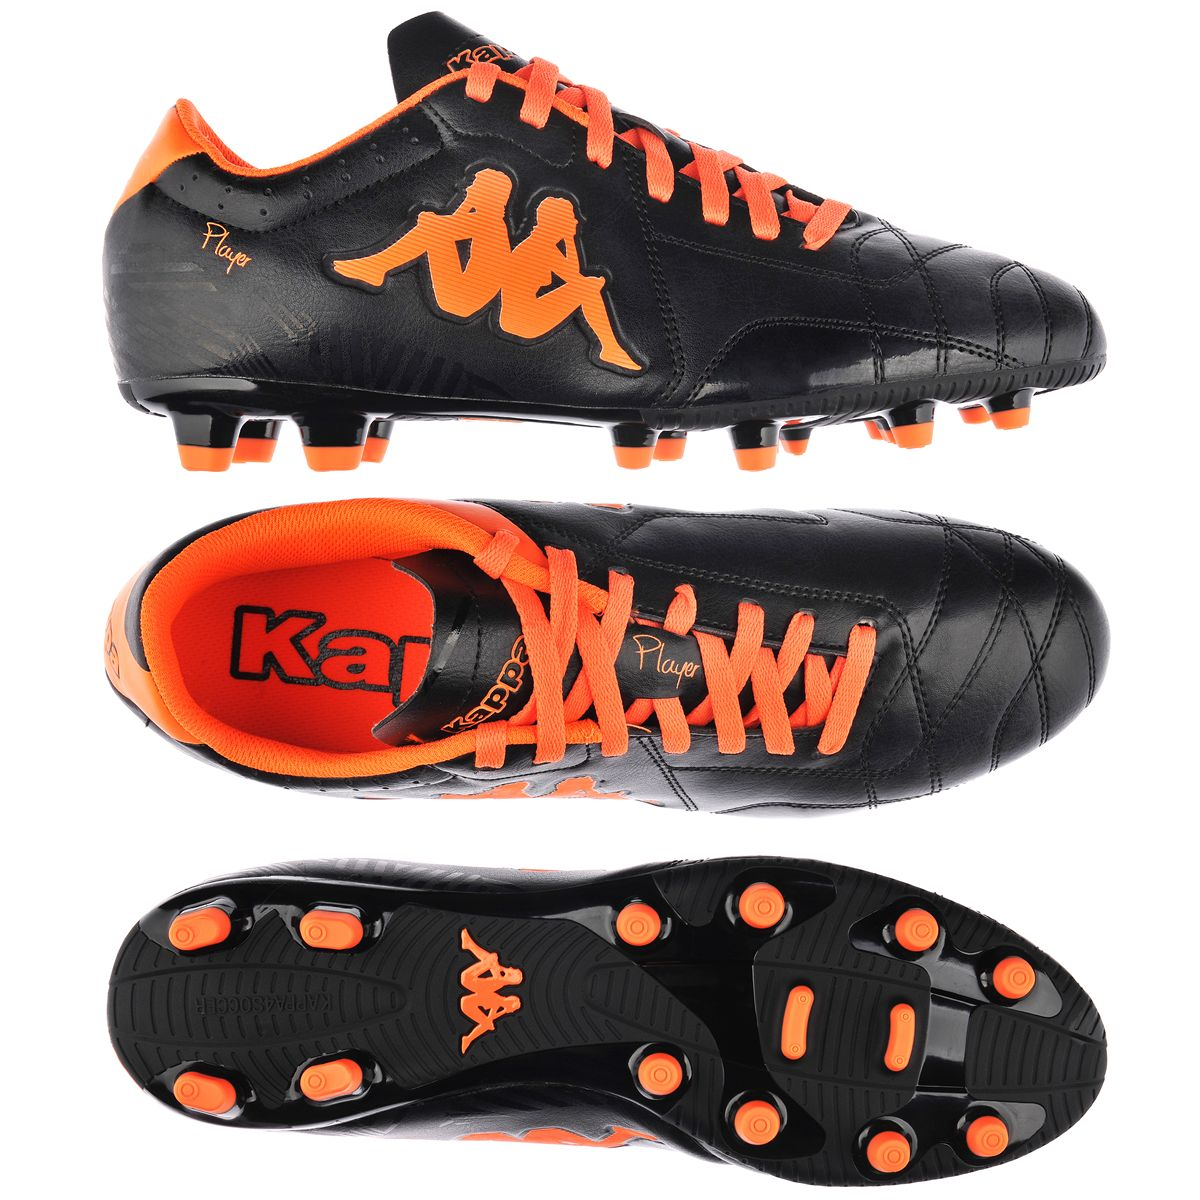 b454bfc5bd6 The laceless Kappa 2019 football boots combine a high-cut Dynamic Fit  collar design with a thin synthetic upper layer. They appear to be fully  knitted